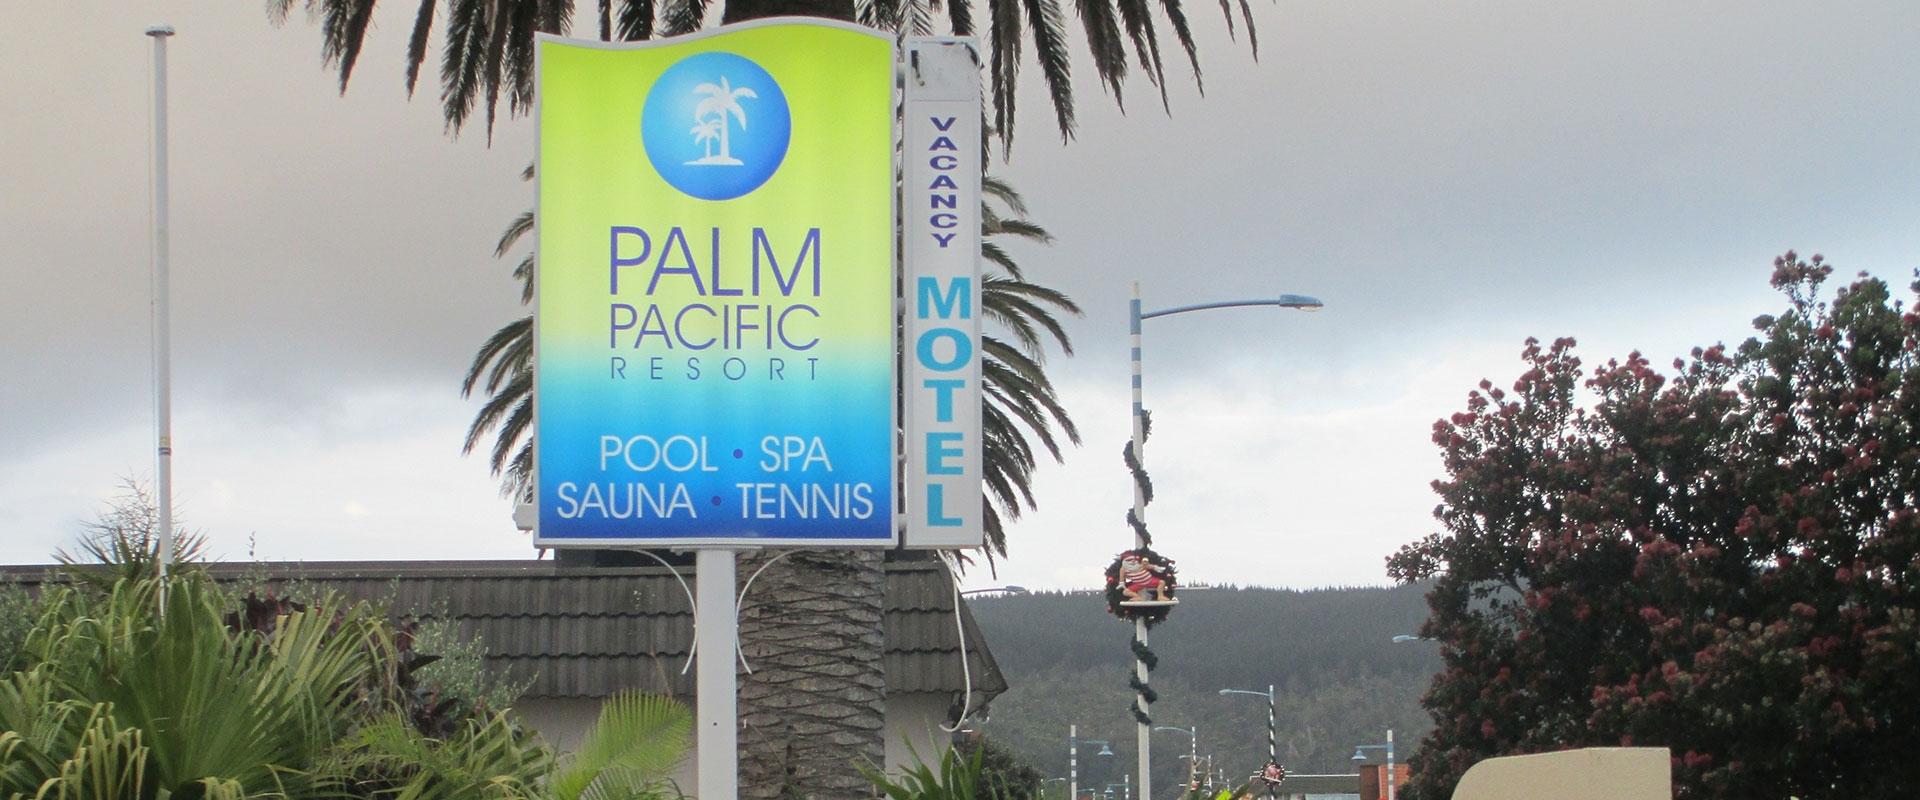 Palm Pacific Resort & Motel in Whangamata